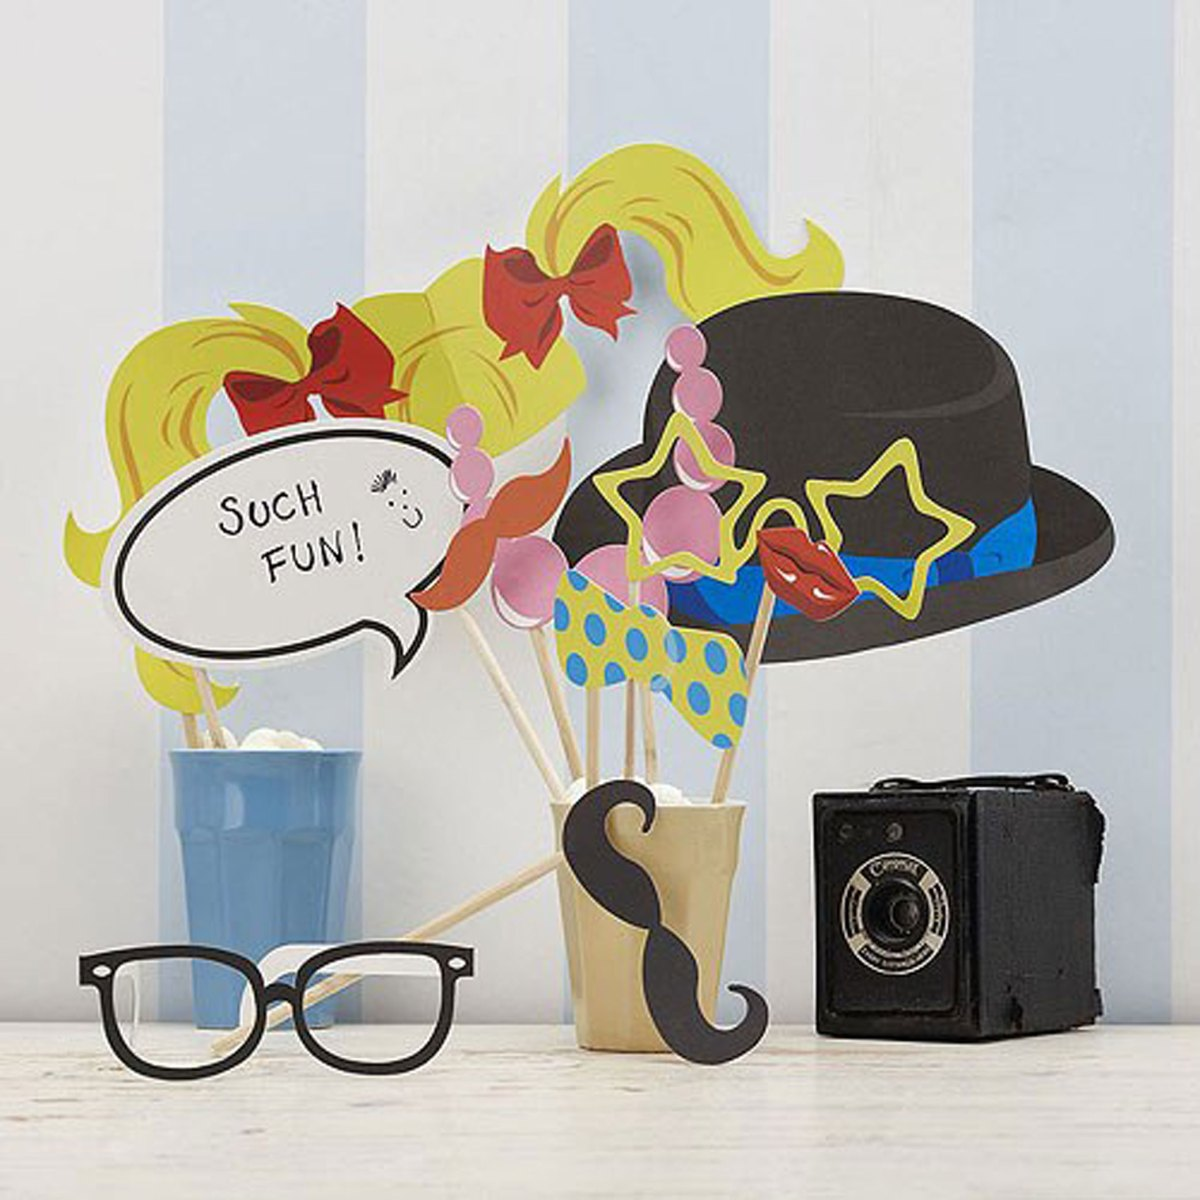 Vintage Classy Photo Booth Props Kit with bower hat